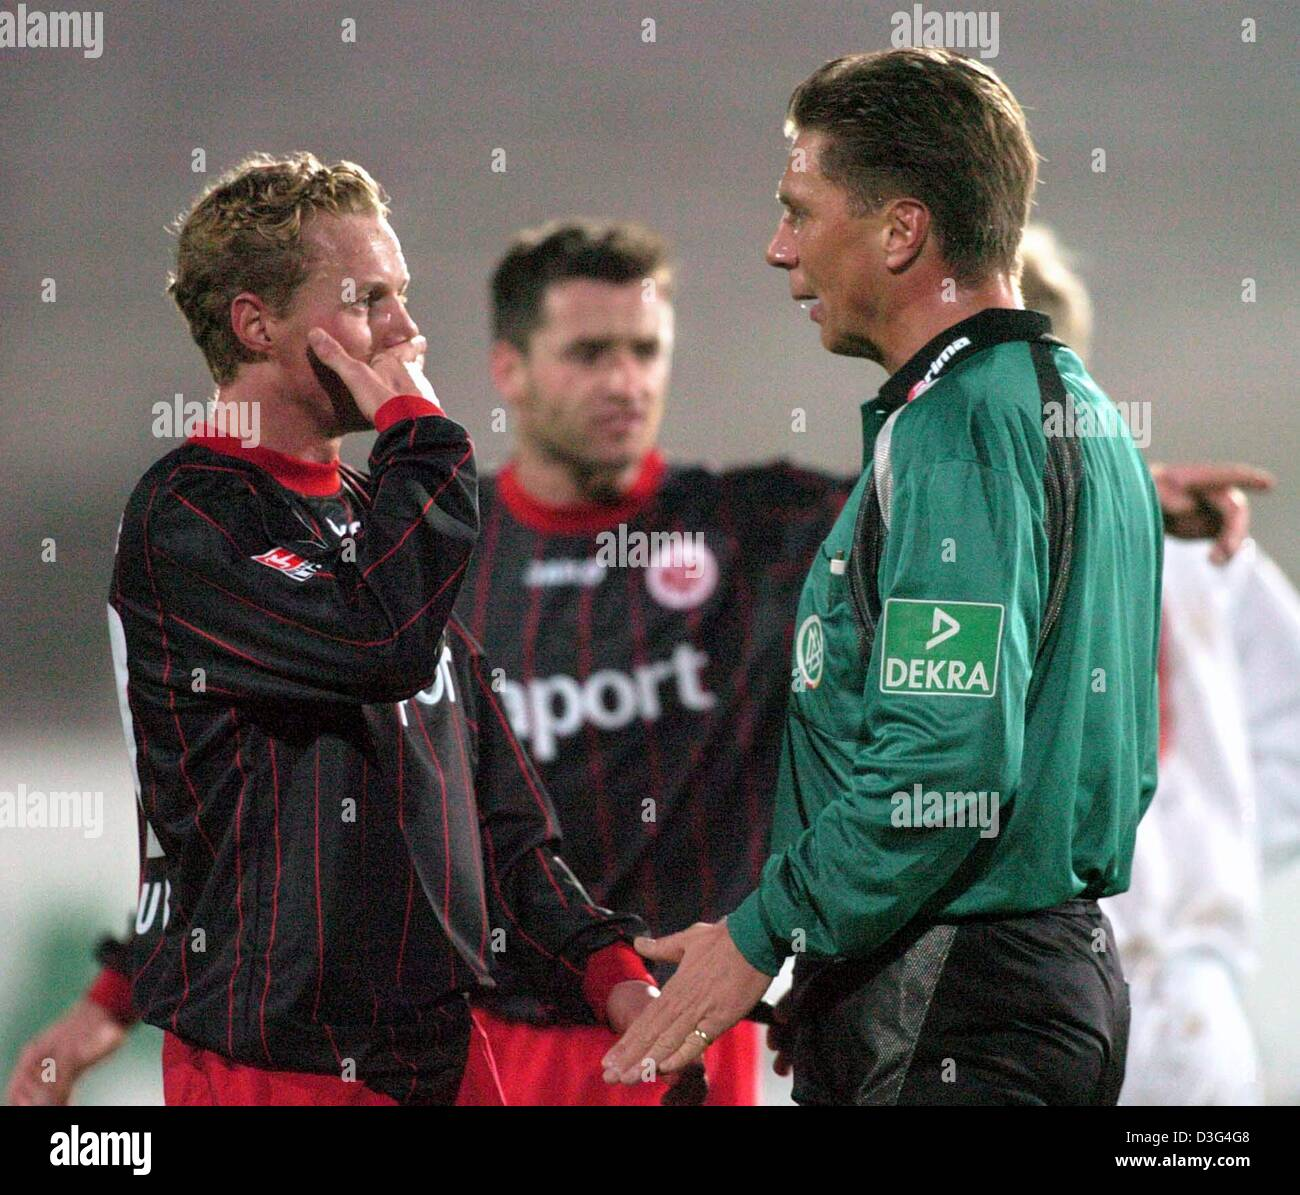 (dpa) - Eintracht's Christoph Preuss holds his mouth shut during a dispute with referee Thorsten Kinhoefer during - Stock Image